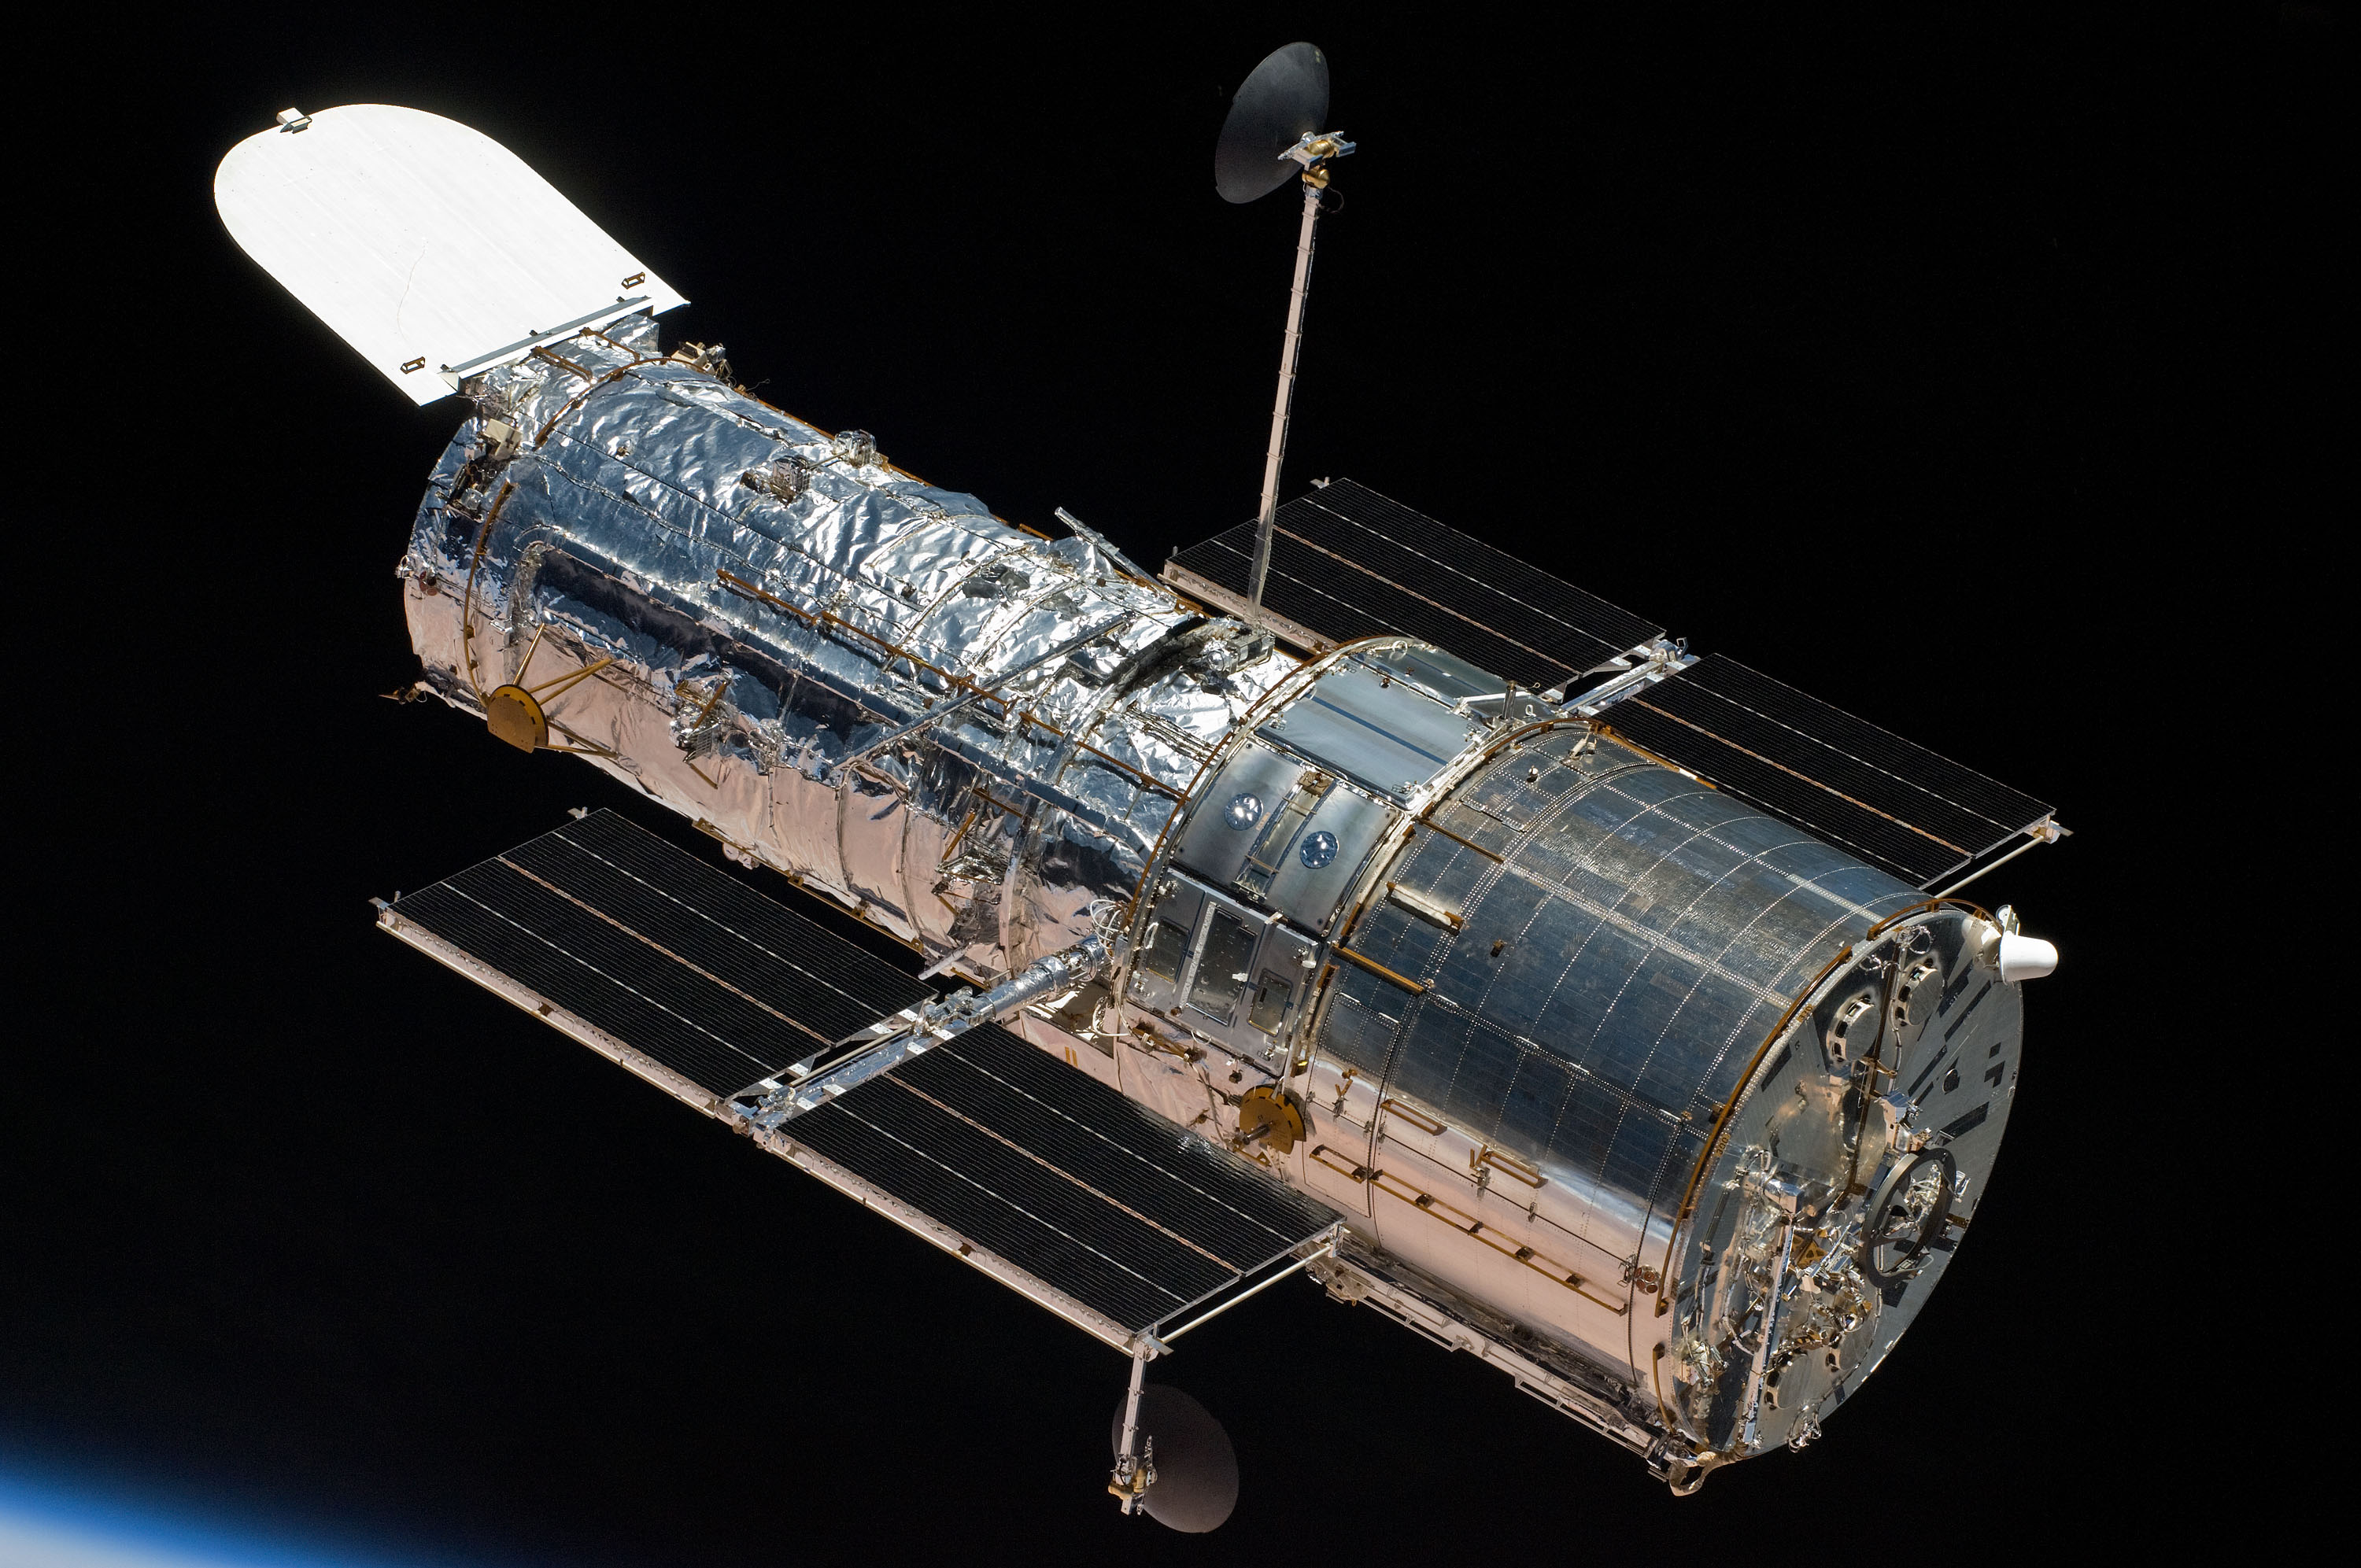 Since launch in 1990 the Hubble Space Telescope HST has provided amazing images that have led to discoveries Explore Hubbles history and facts